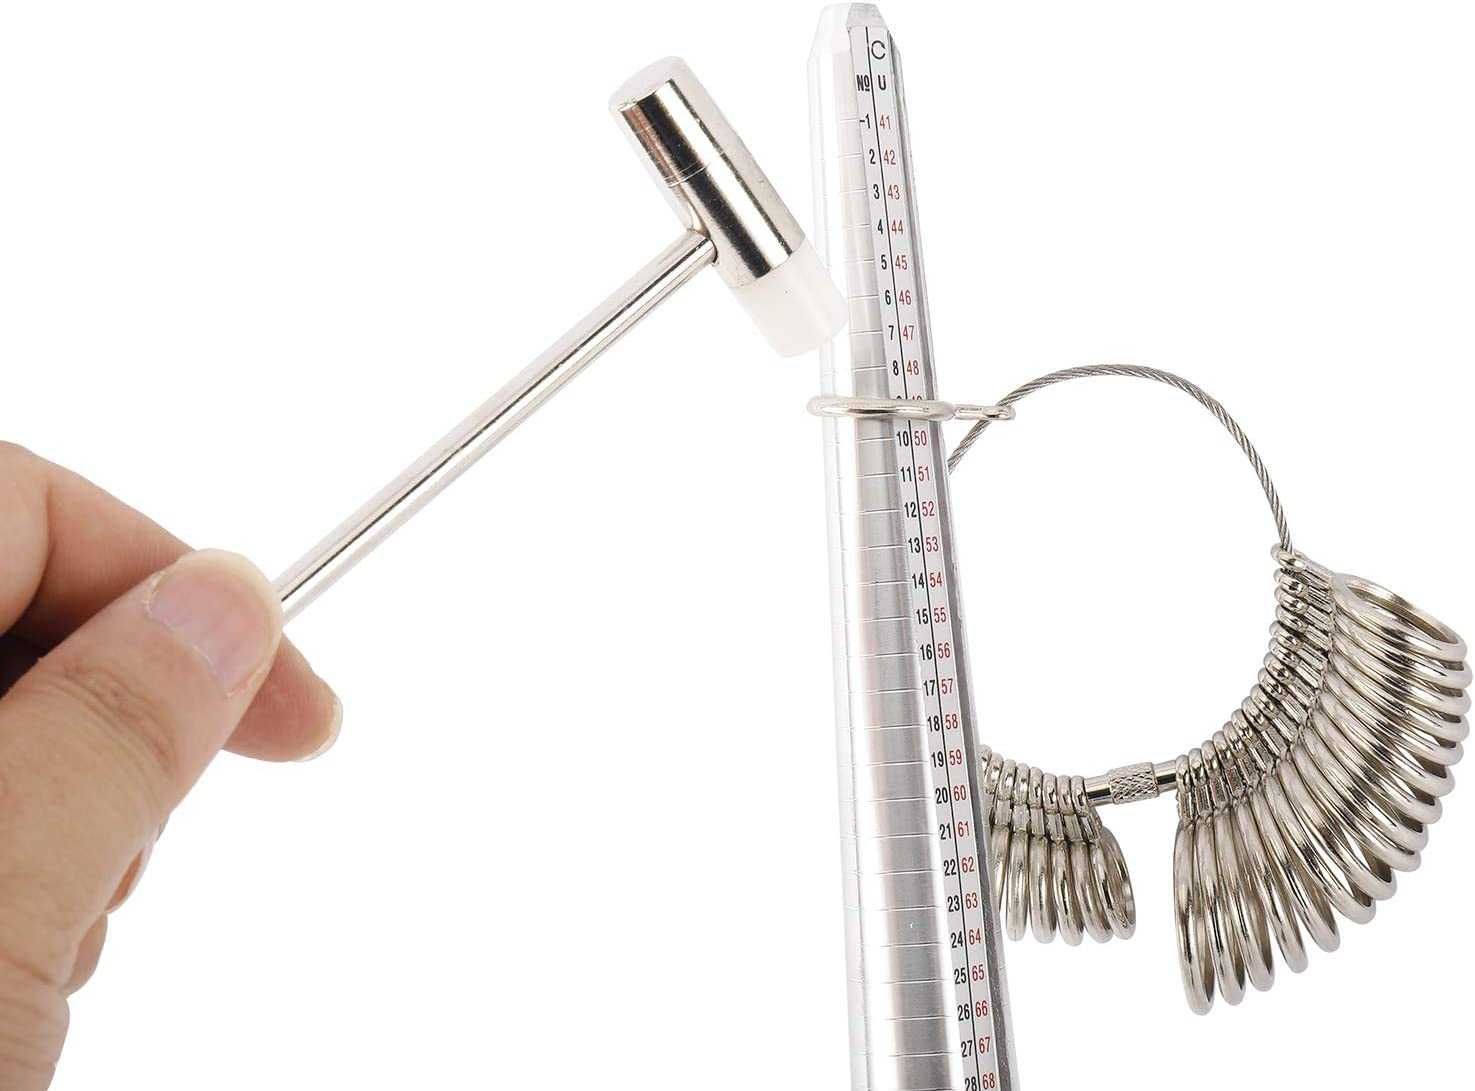 Mini Jewelry Hammer Buffing Bars and Storage Bag 27 pcs Ring Sizer Gauge 9Pcs Jewelry Ring Making Tools Ring Clamp Jewelry Cleaning Cloth Measuring Stick Ring Size Gauge